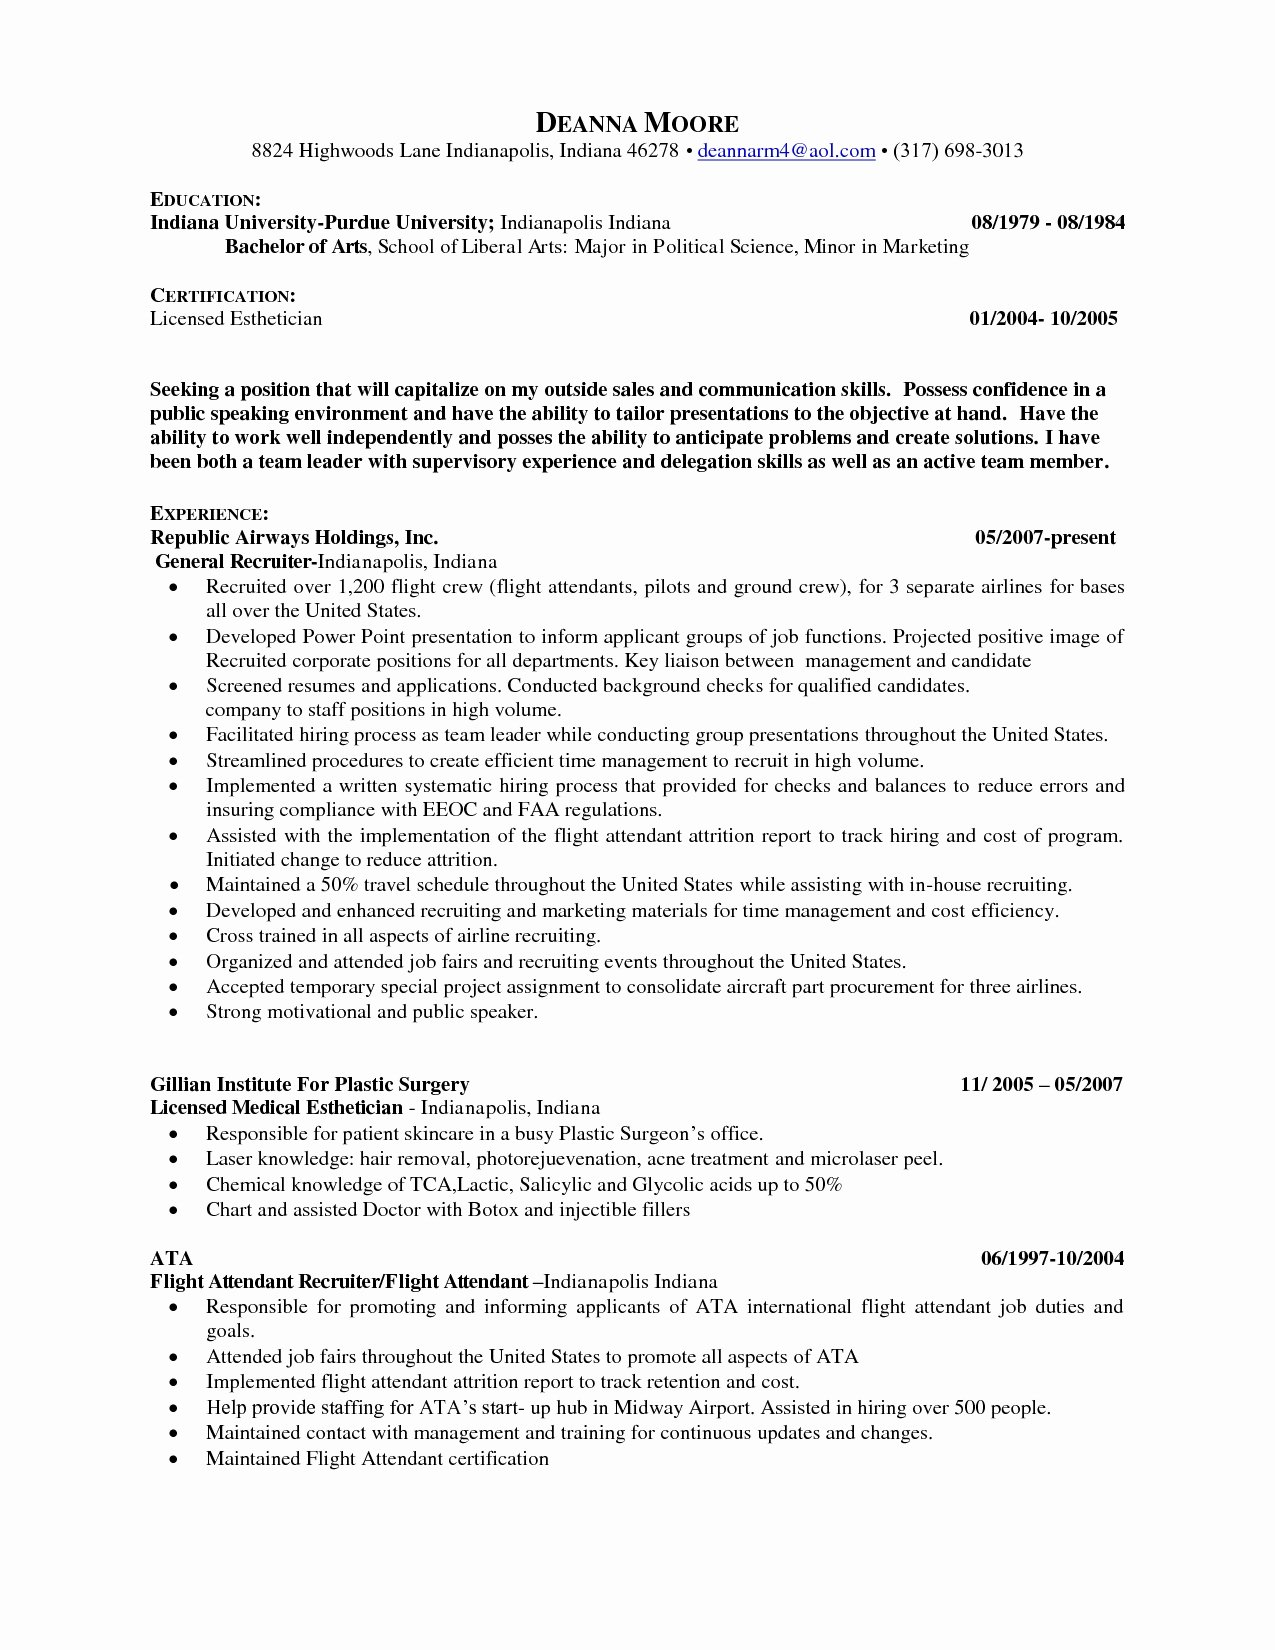 How to Make A Resume No Experience